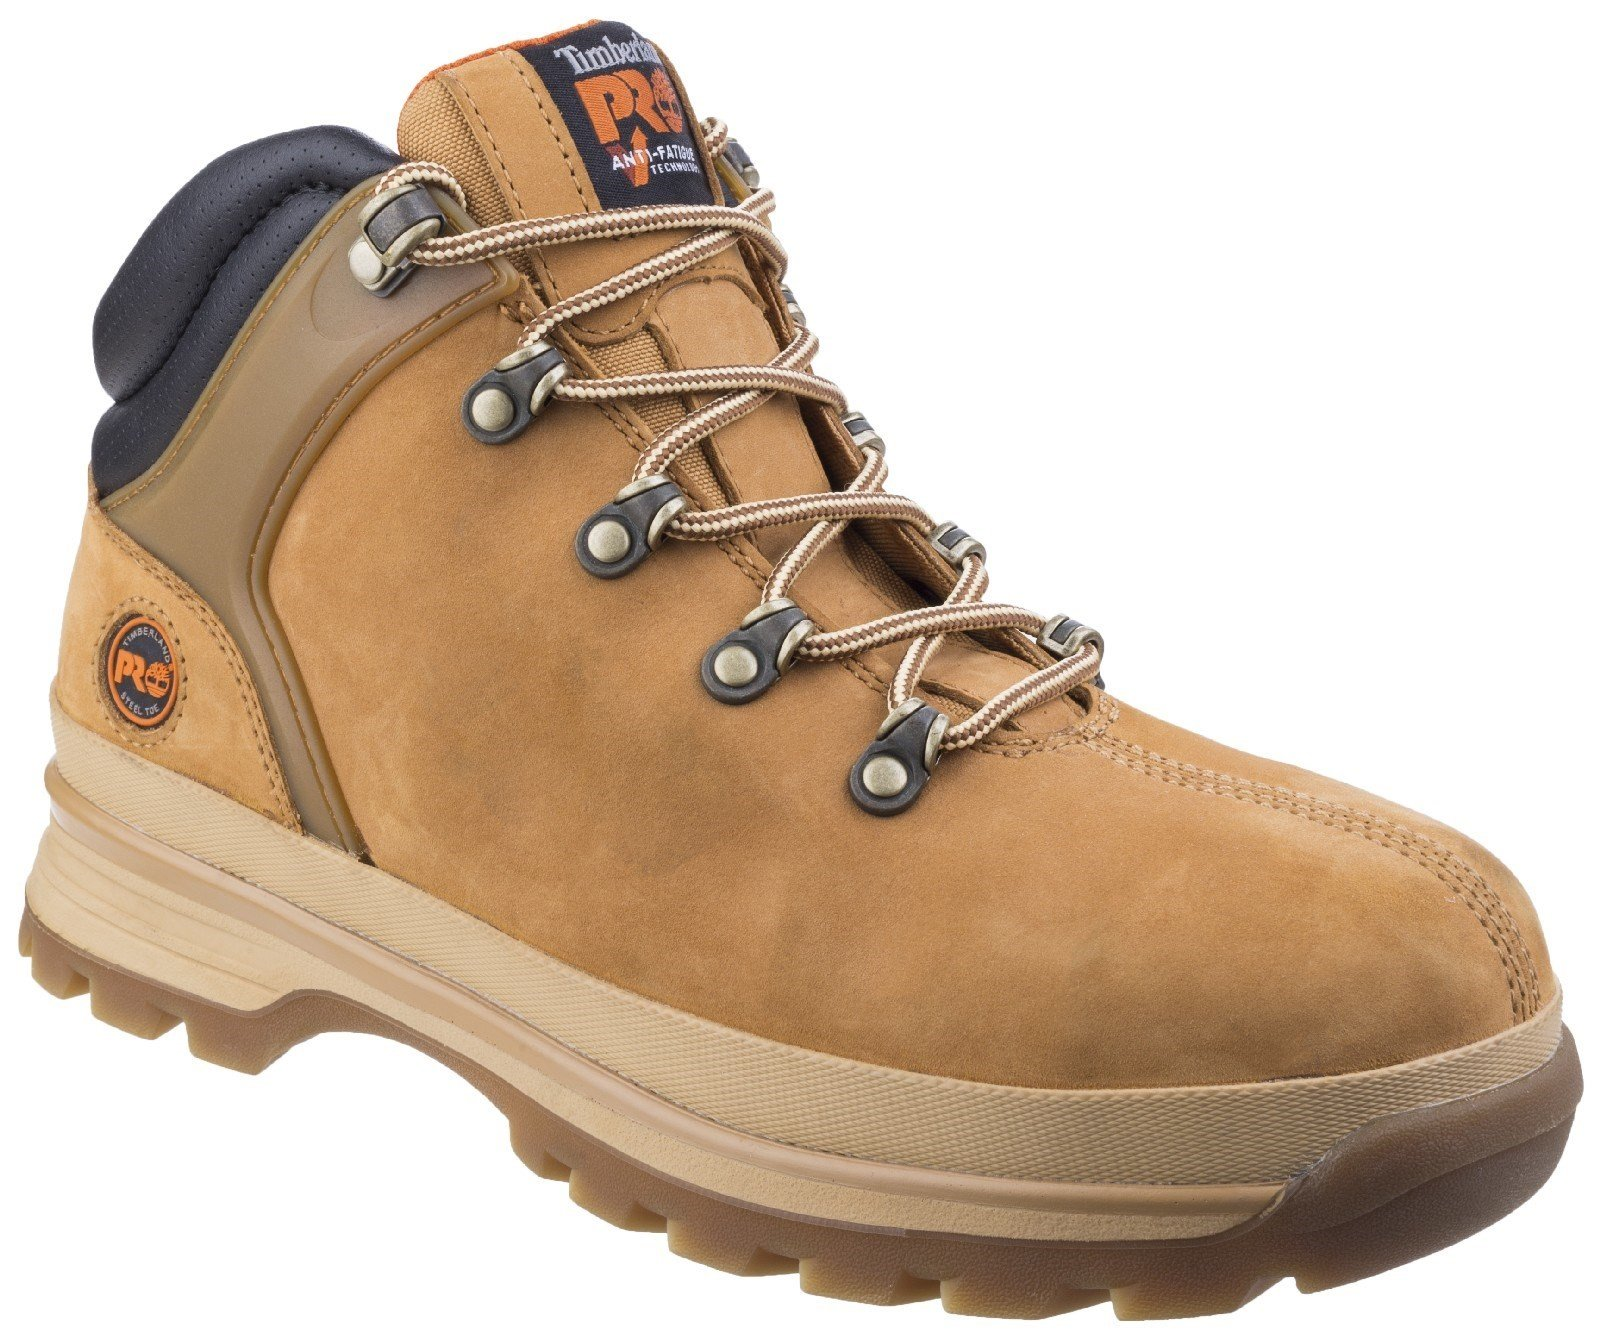 Timberland Pro Men's Splitrock XT Lace-up Safety Boot Various Colours 25948 - Wheat 4